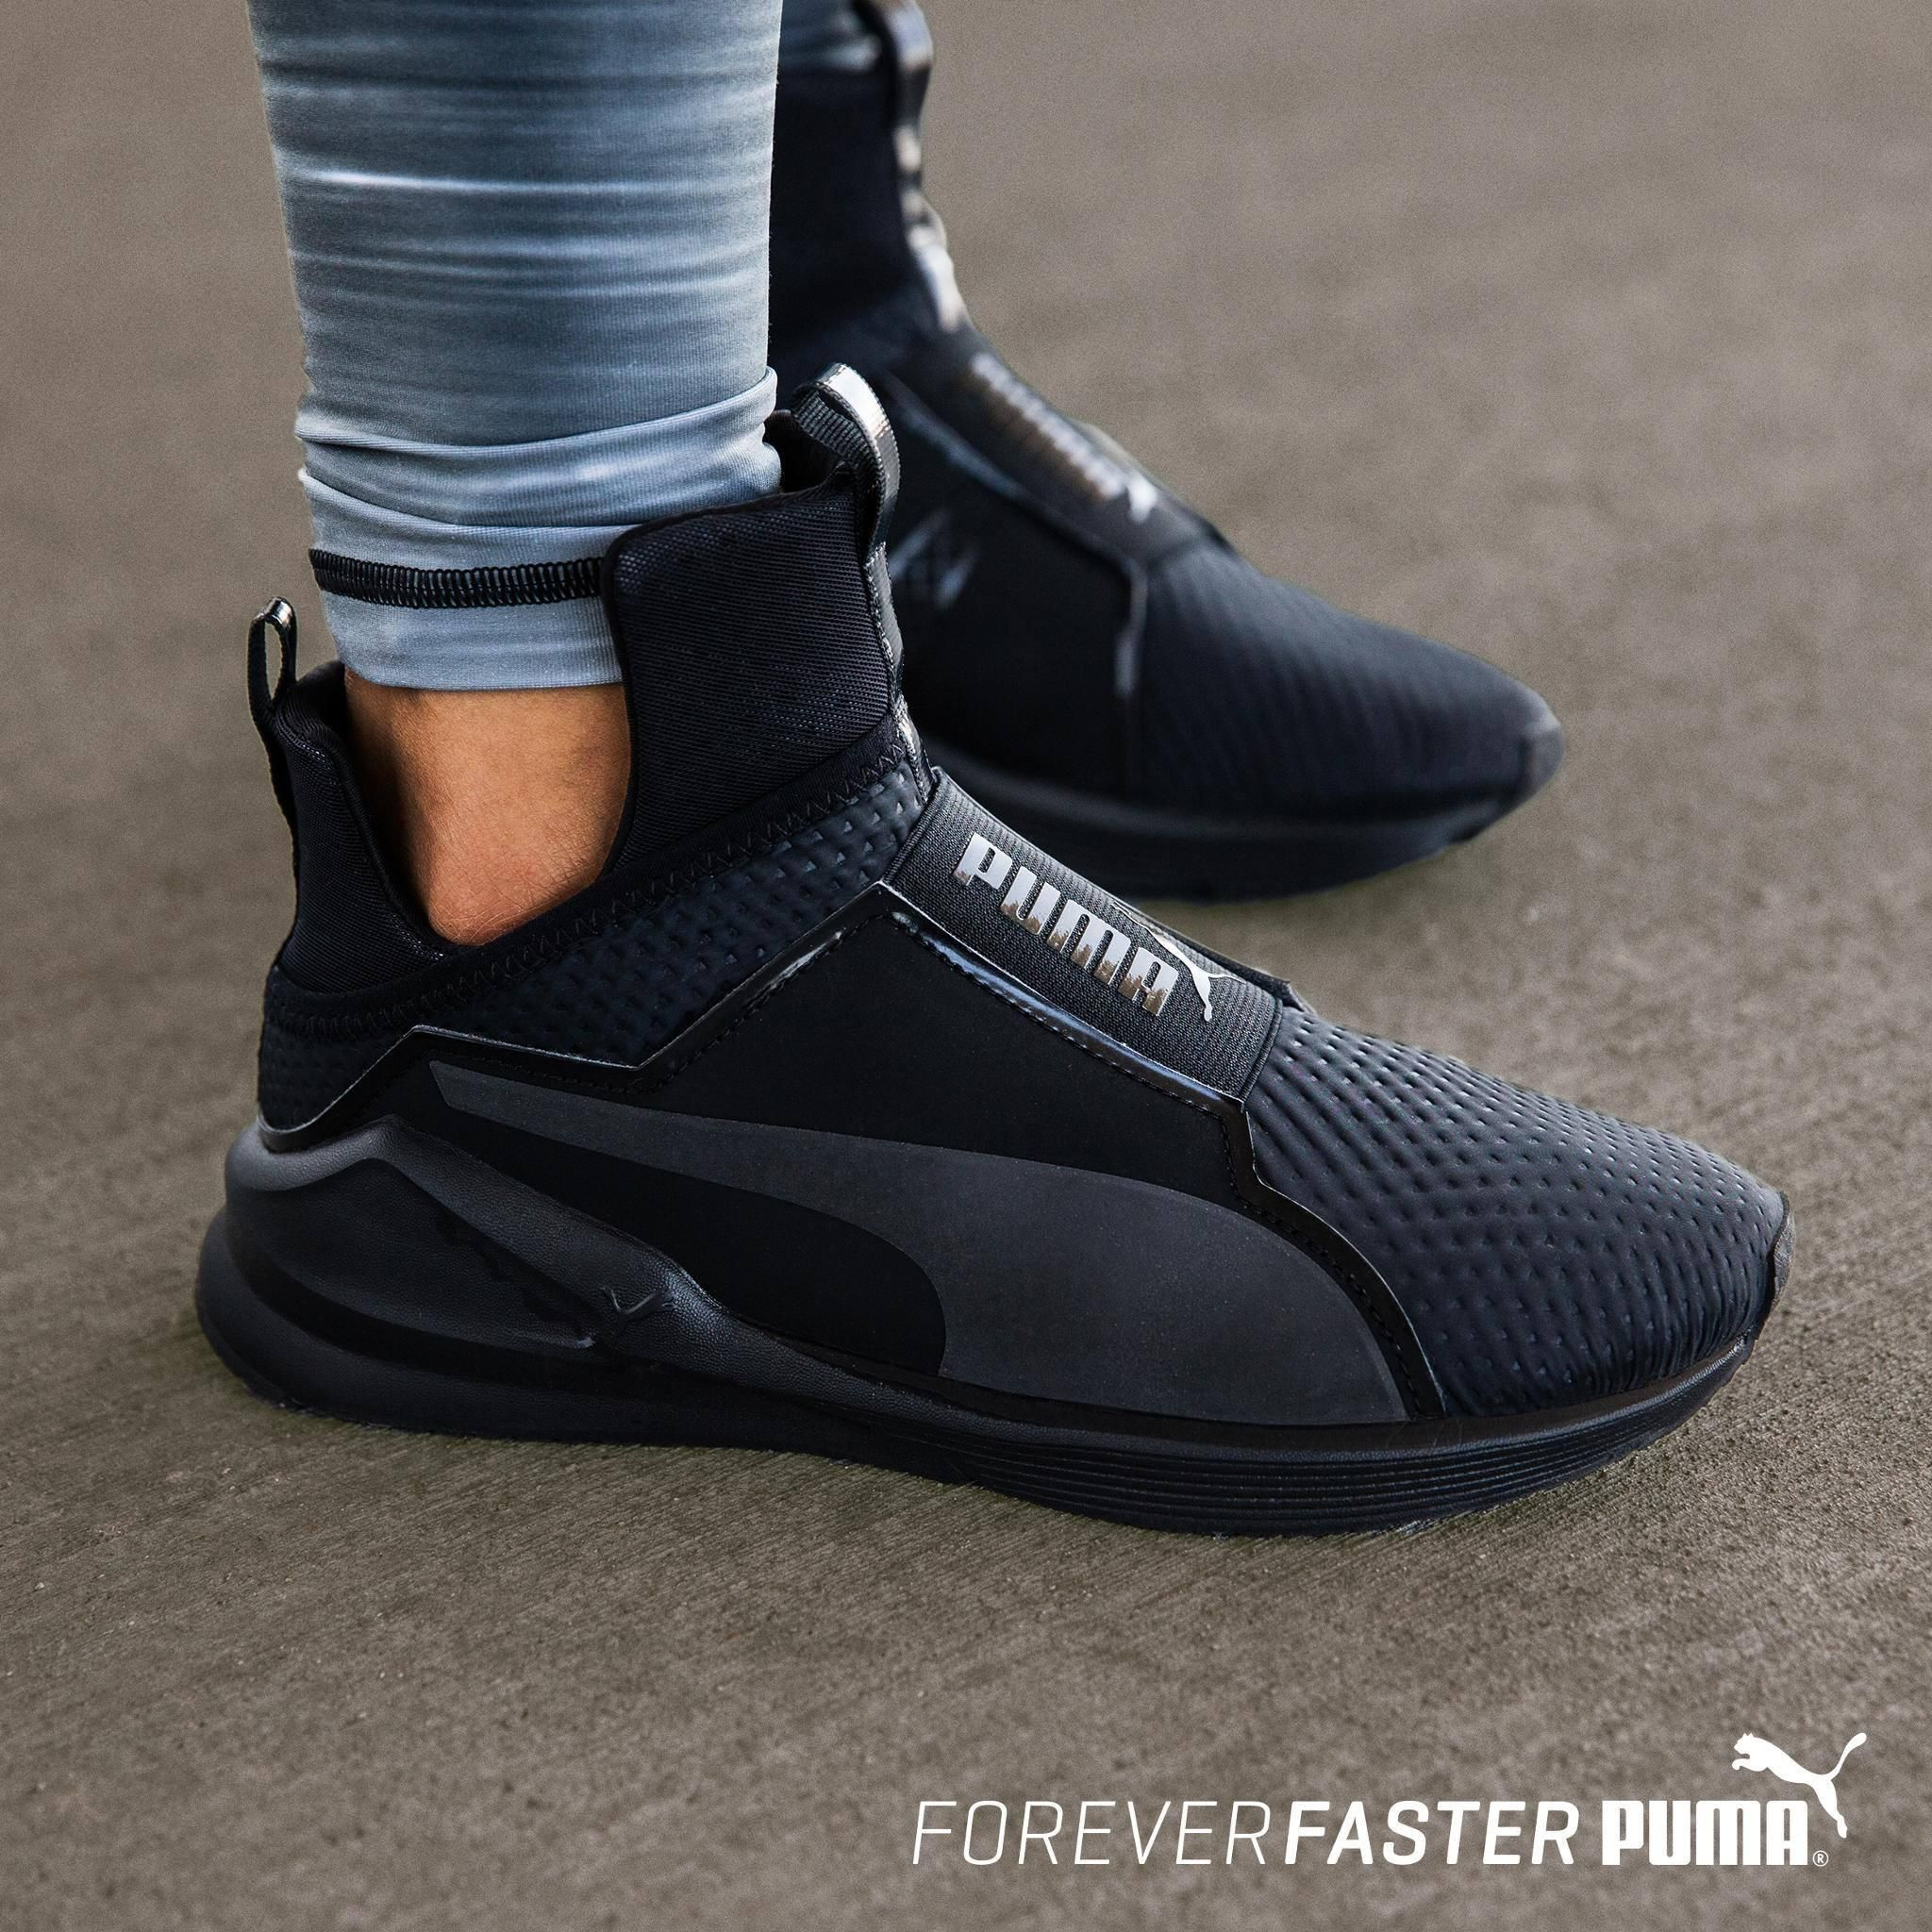 Always fierce and never a quitter | PUMA Fierce | Puma shoes ...